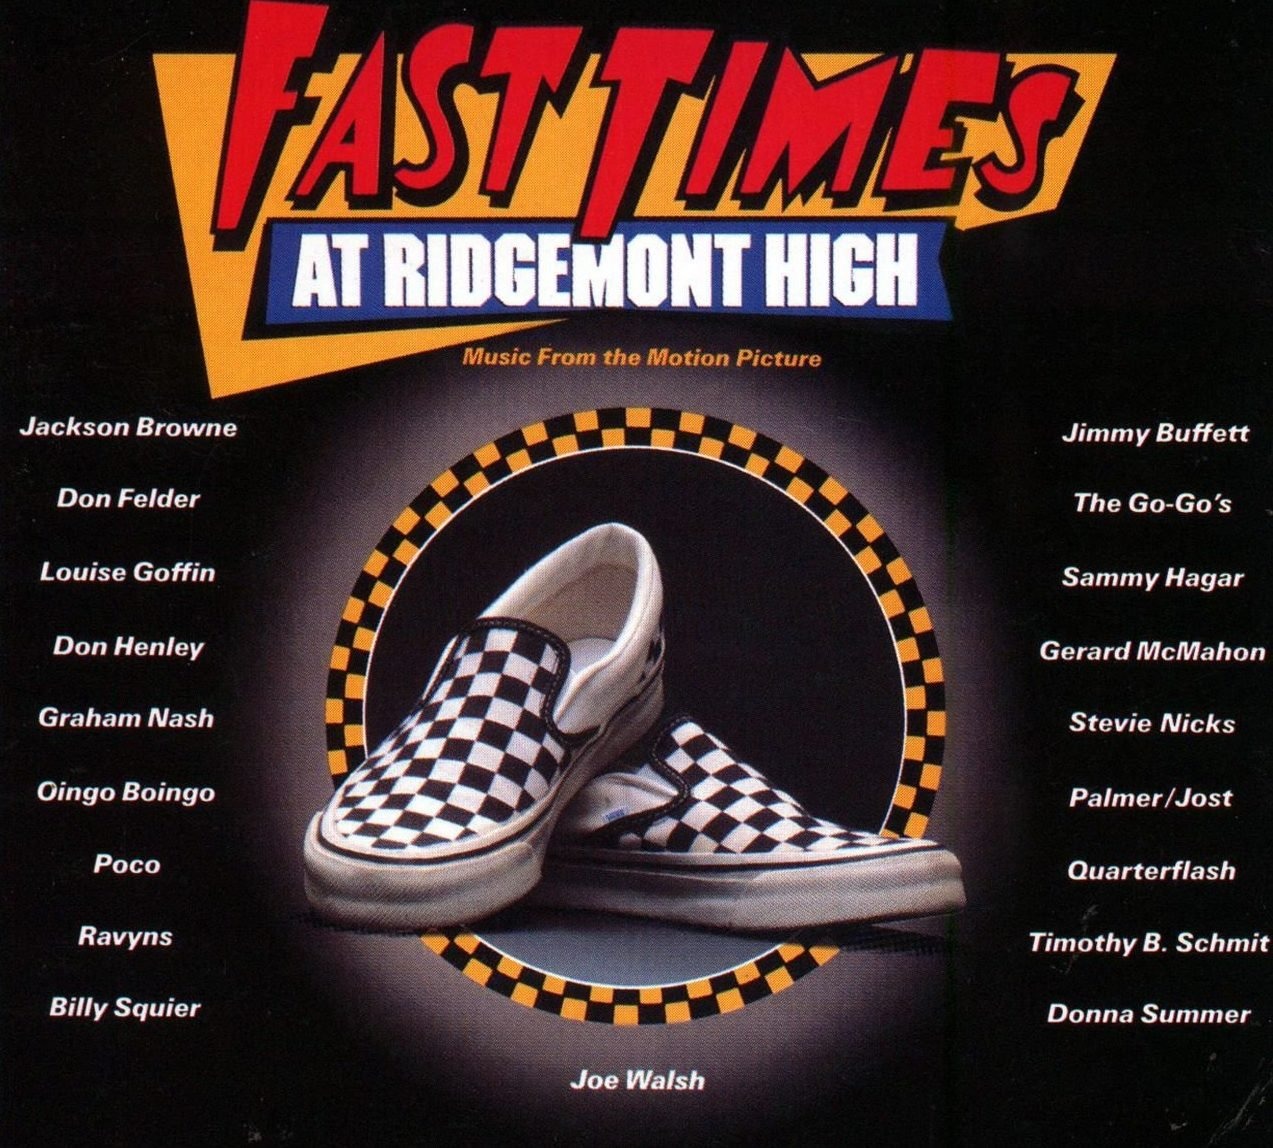 1280x1280 e1616513600727 25 Facts You Probably Never Knew About Fast Times At Ridgemont High!